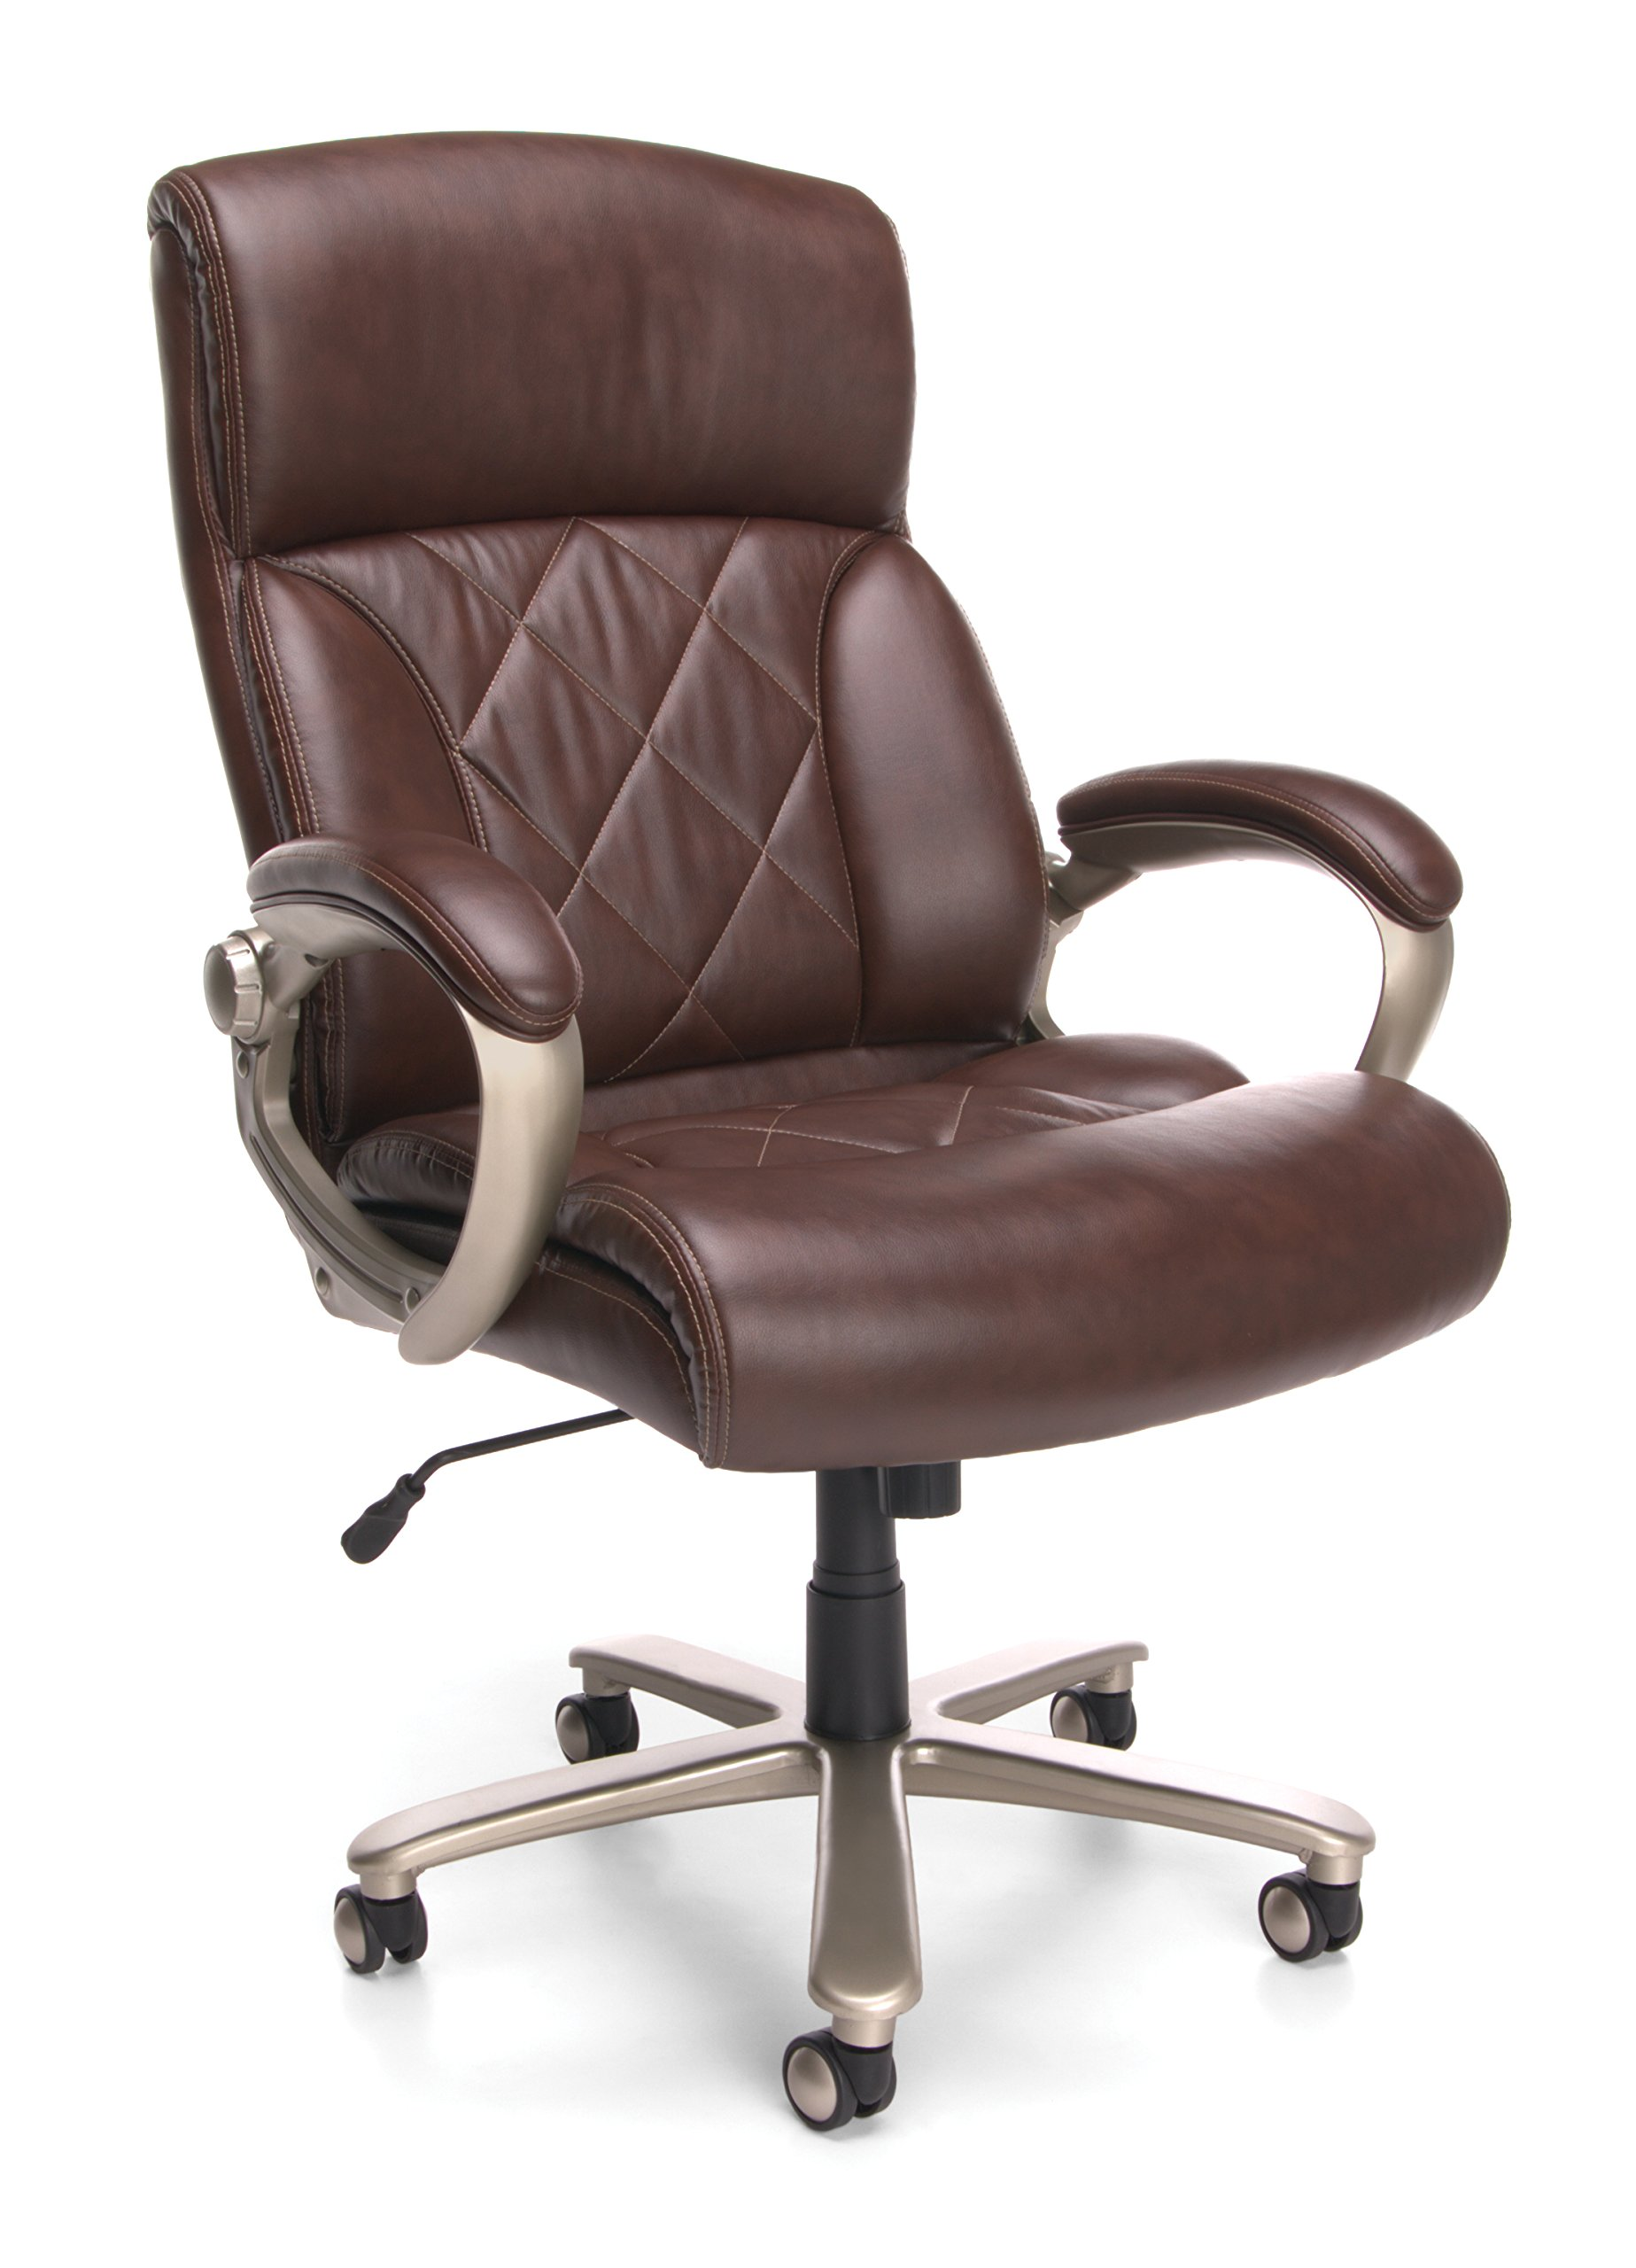 OFM Avenger Series Big and Tall Leather Executive Chair - Brown Leather Computer Chair with Arms (812-LX)